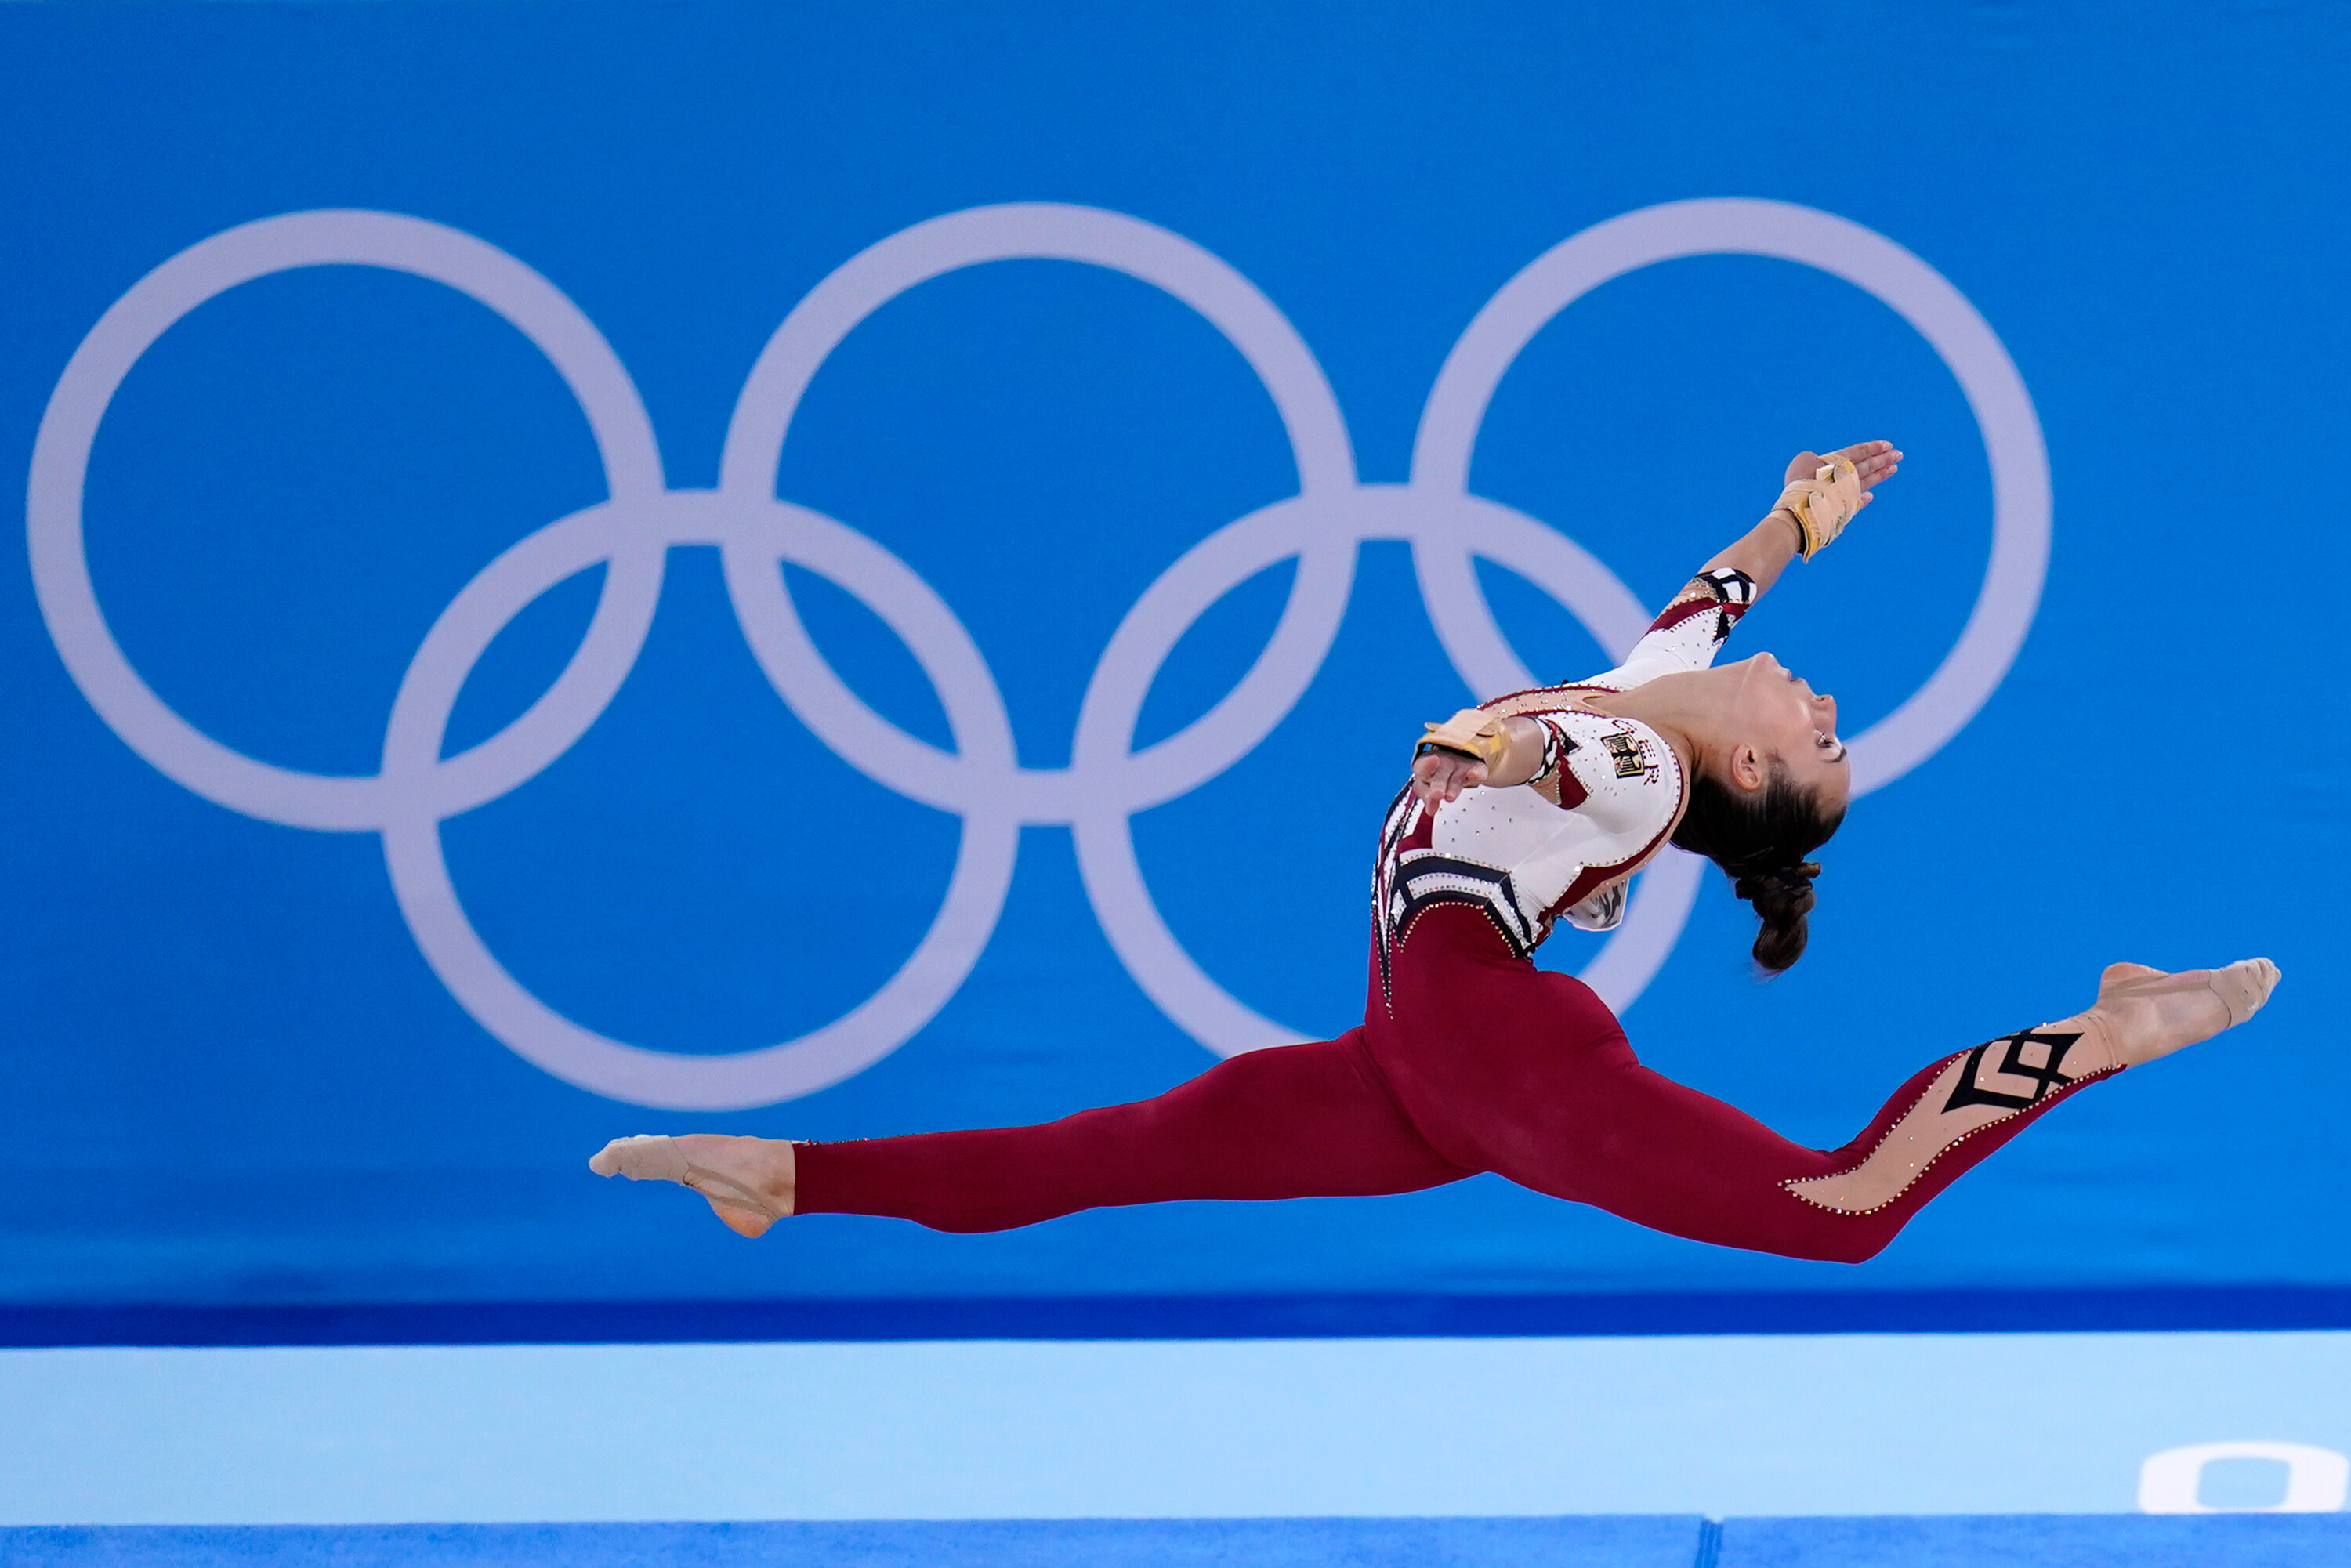 Germany's gymnasts wear body-covering unitards, rejecting 'sexualization' of sport